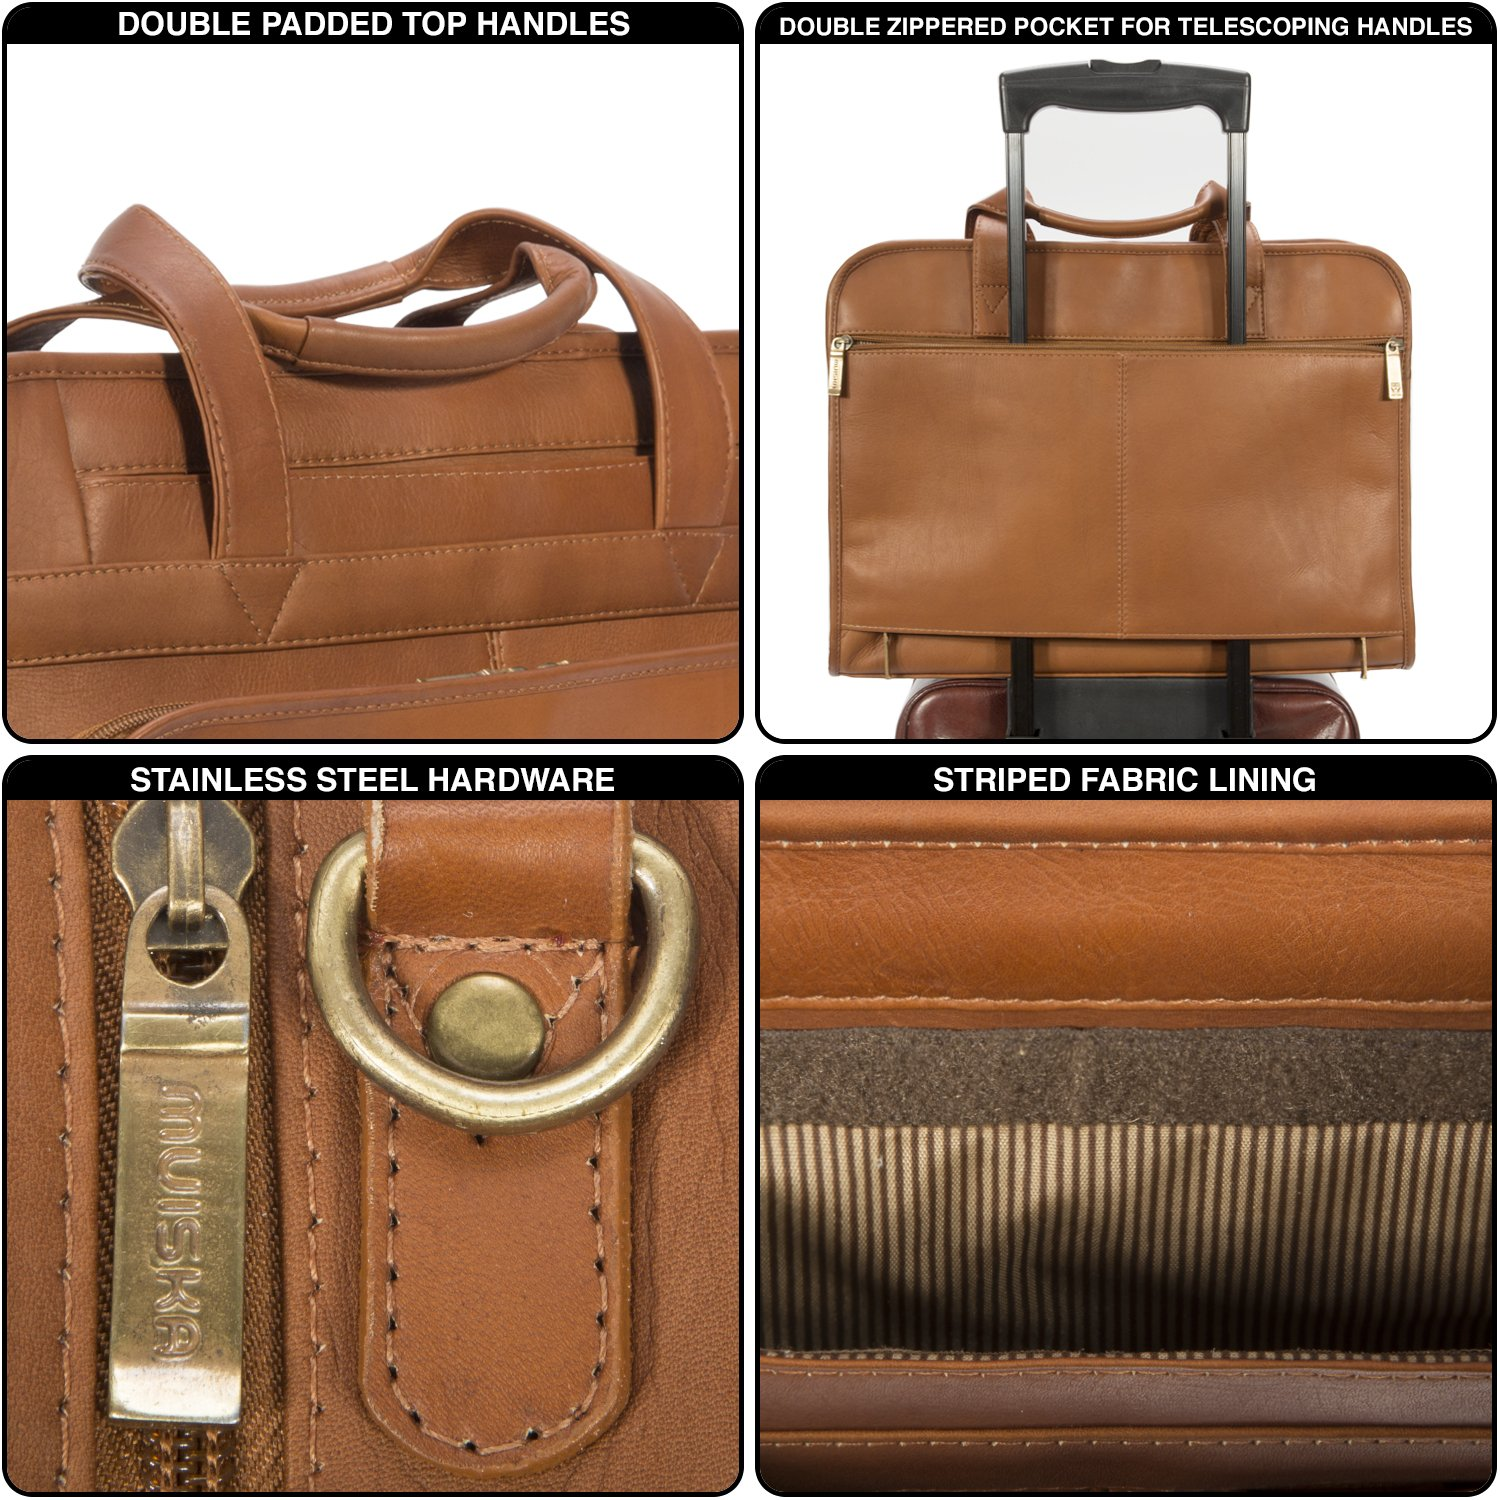 Muiska Leather Top-Zip 17 Inch Laptop Briefcase, Saddle, One Size by Muiska (Image #5)